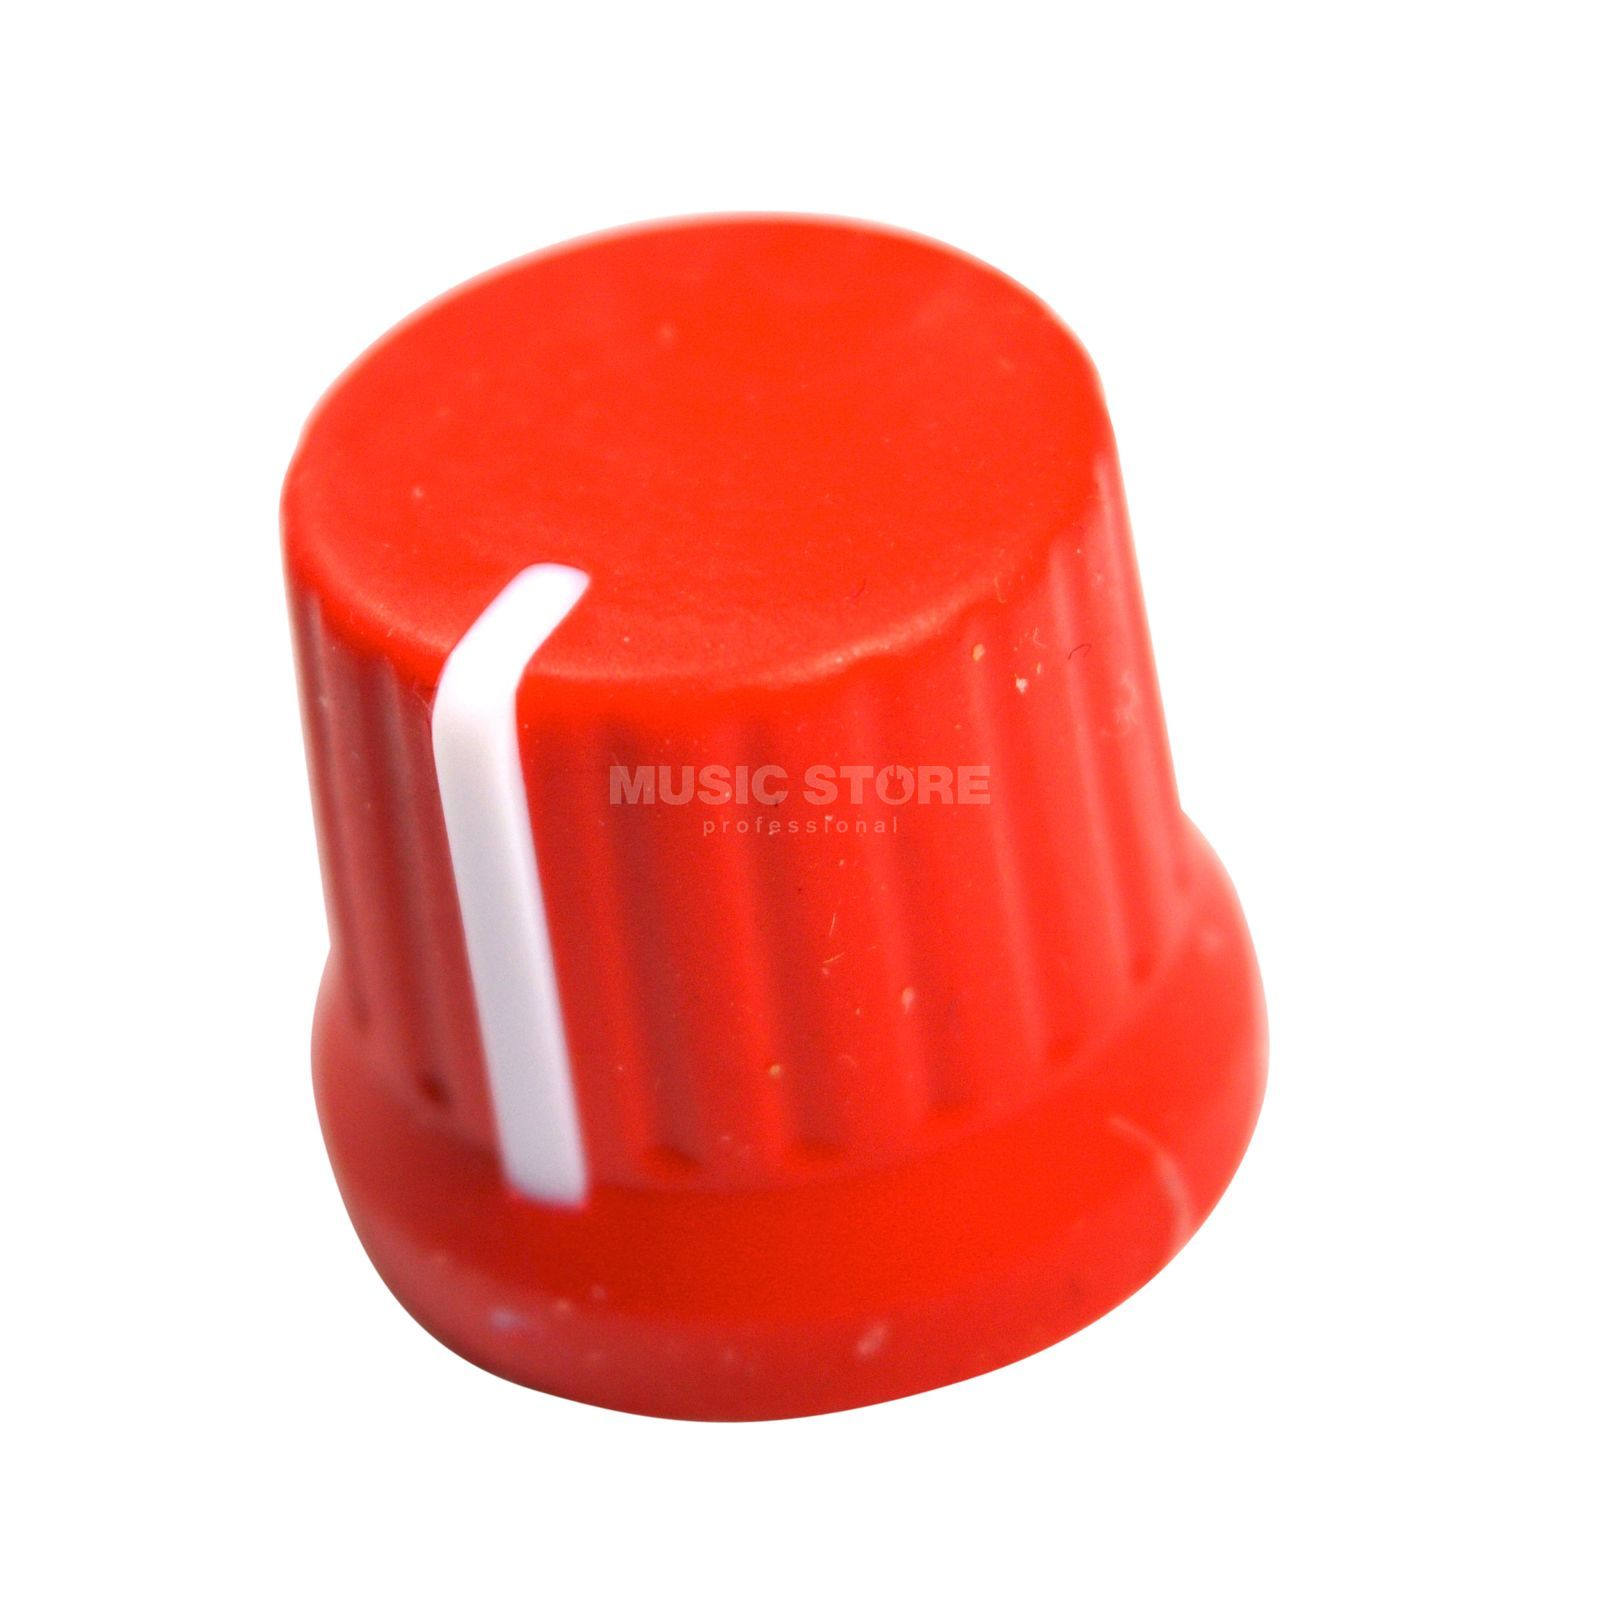 DJ TECHTOOLS Chroma Caps Fatty Knob red  Produktbillede